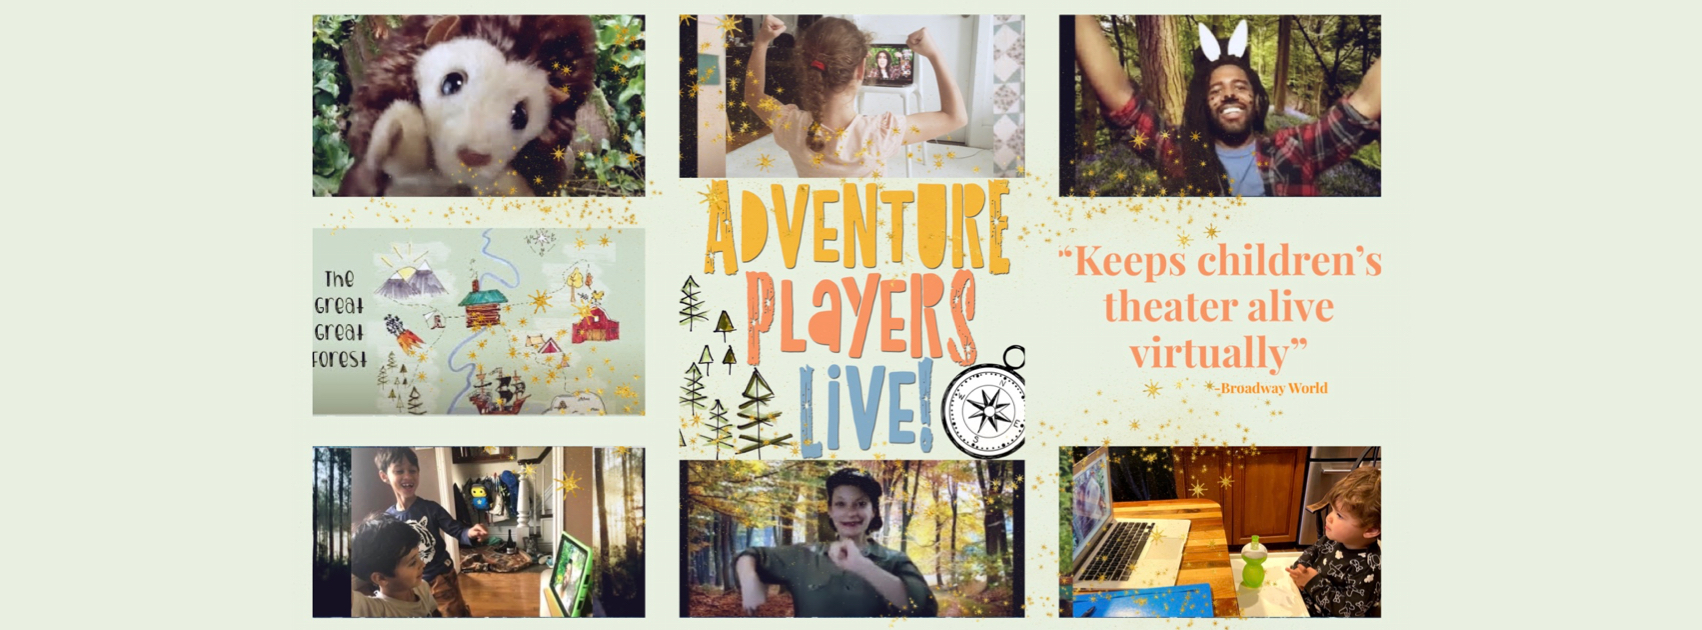 ONLINE Interactive Online Performances for Children at Adventure Players Live!